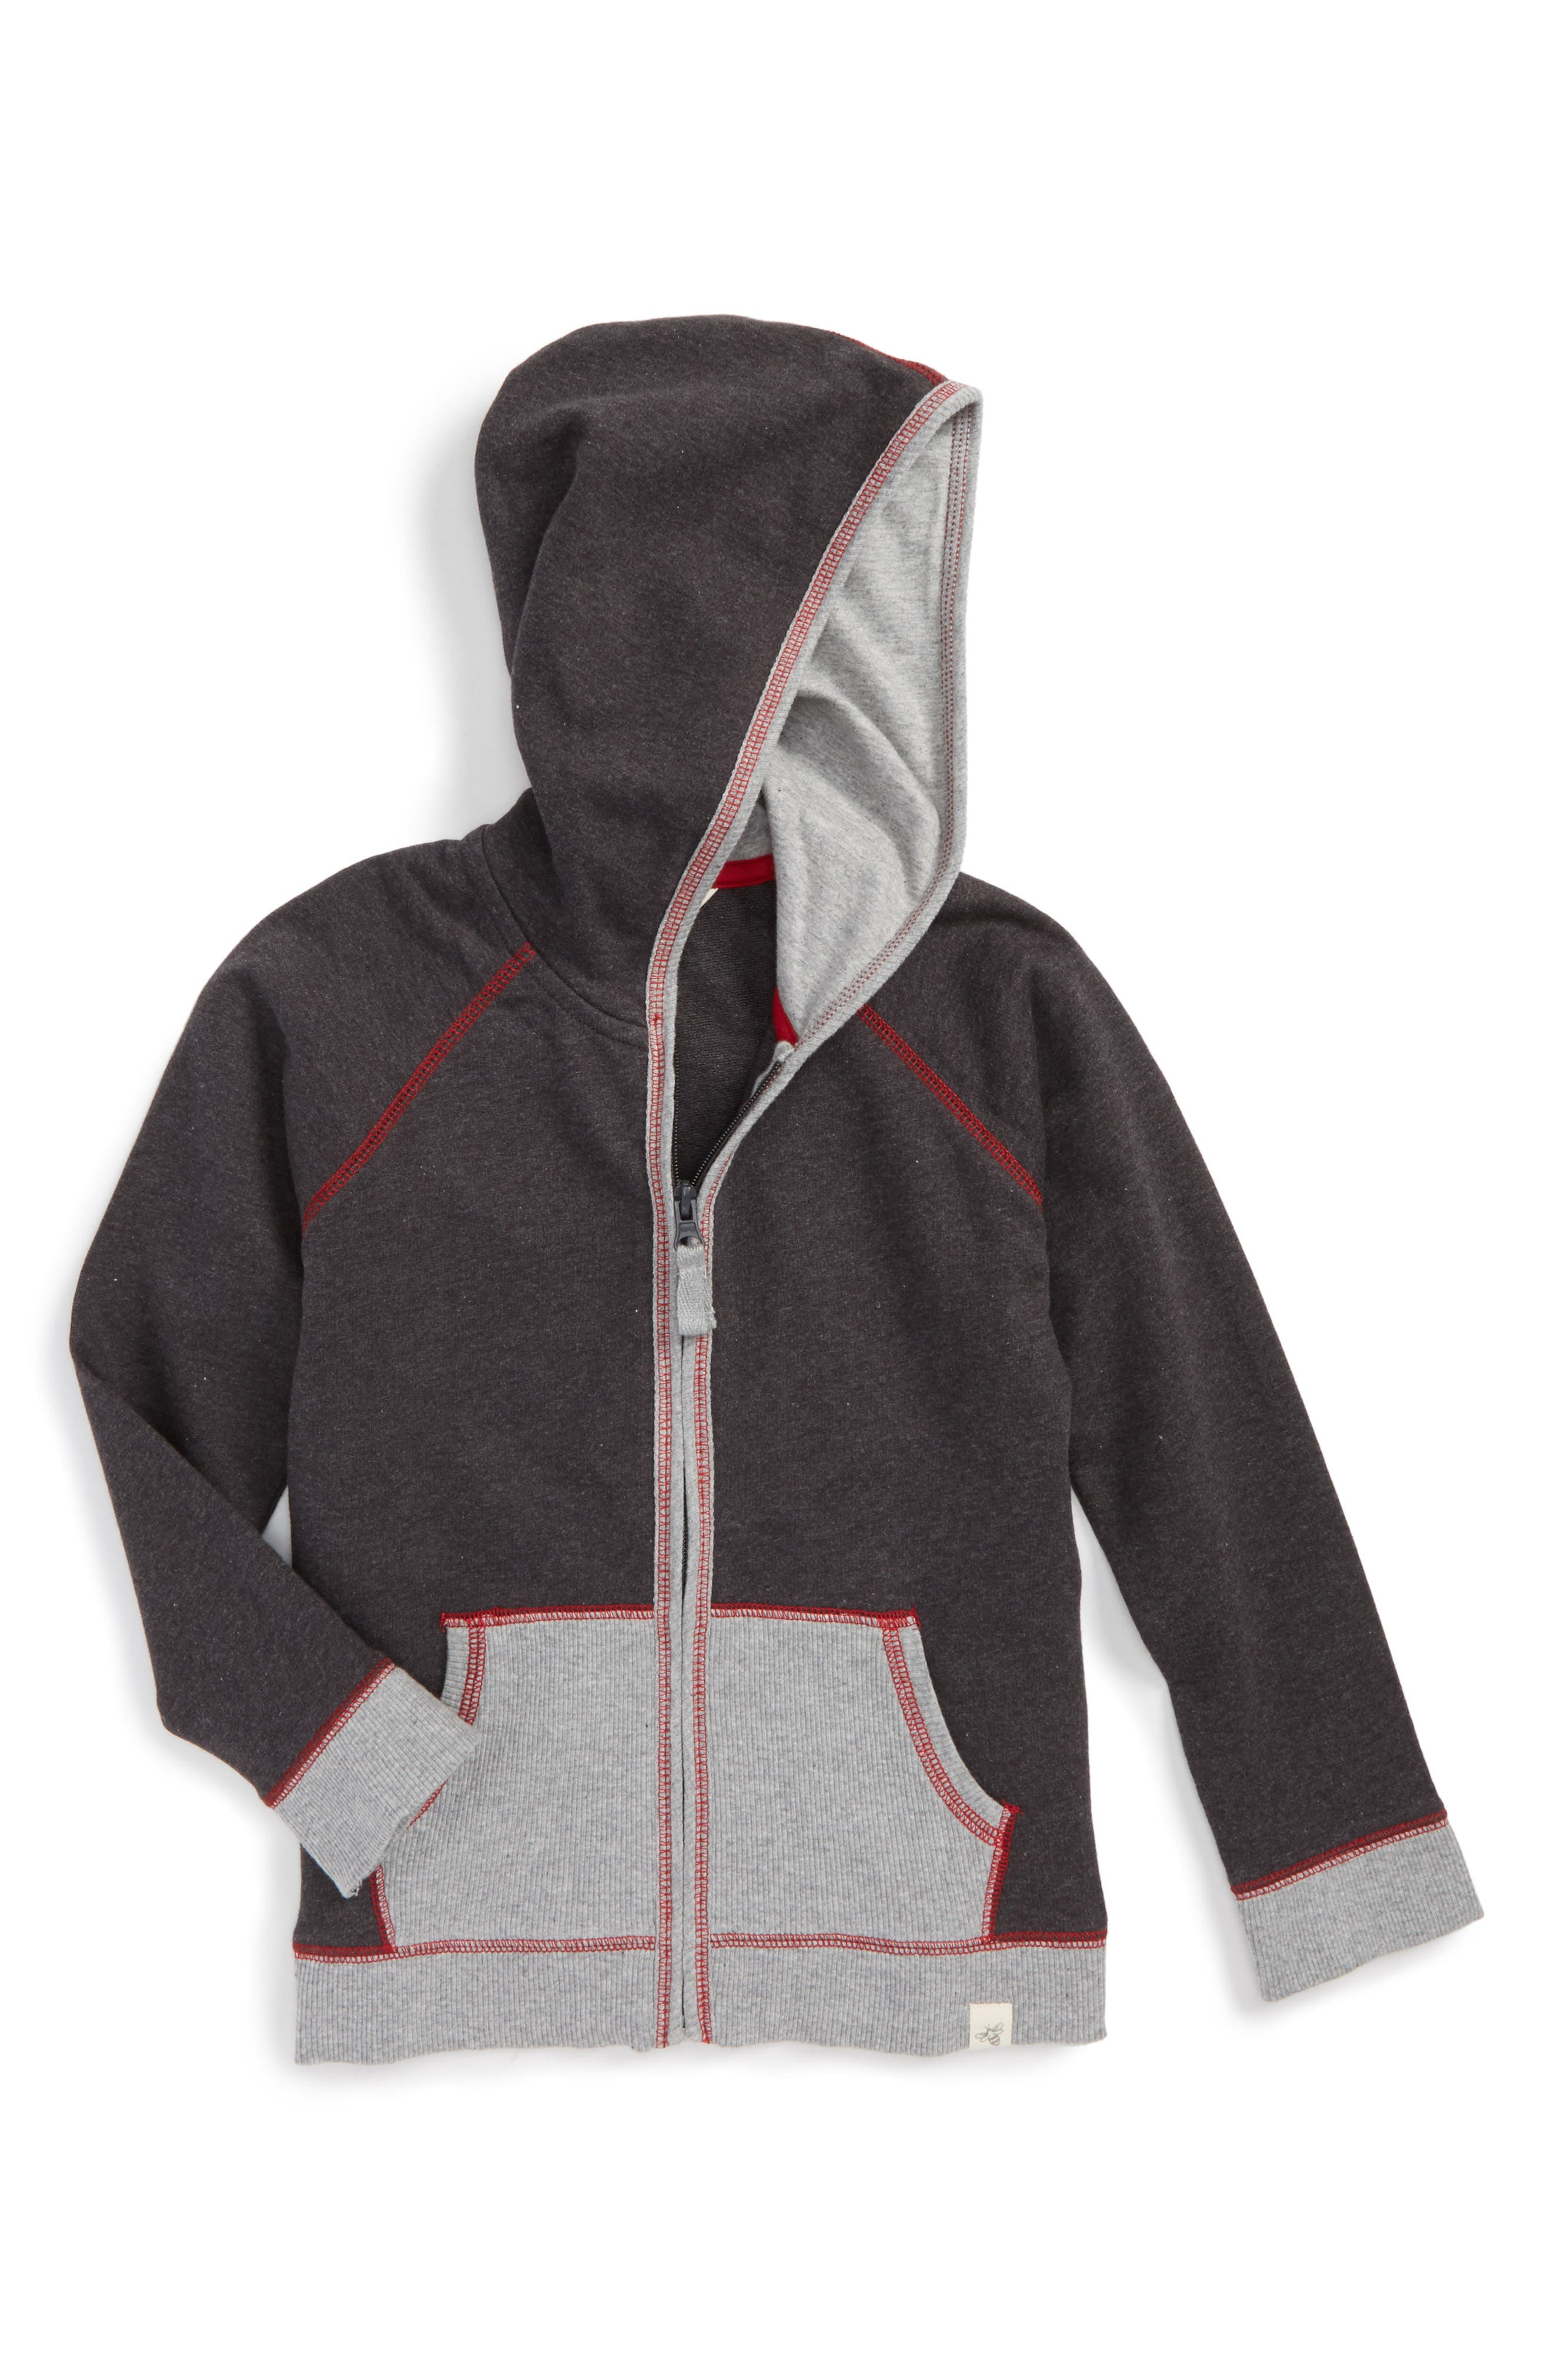 Main Image - Burt's Bees Baby French Terry Organic Cotton Hoodie (Toddler Boys & Little Boys)